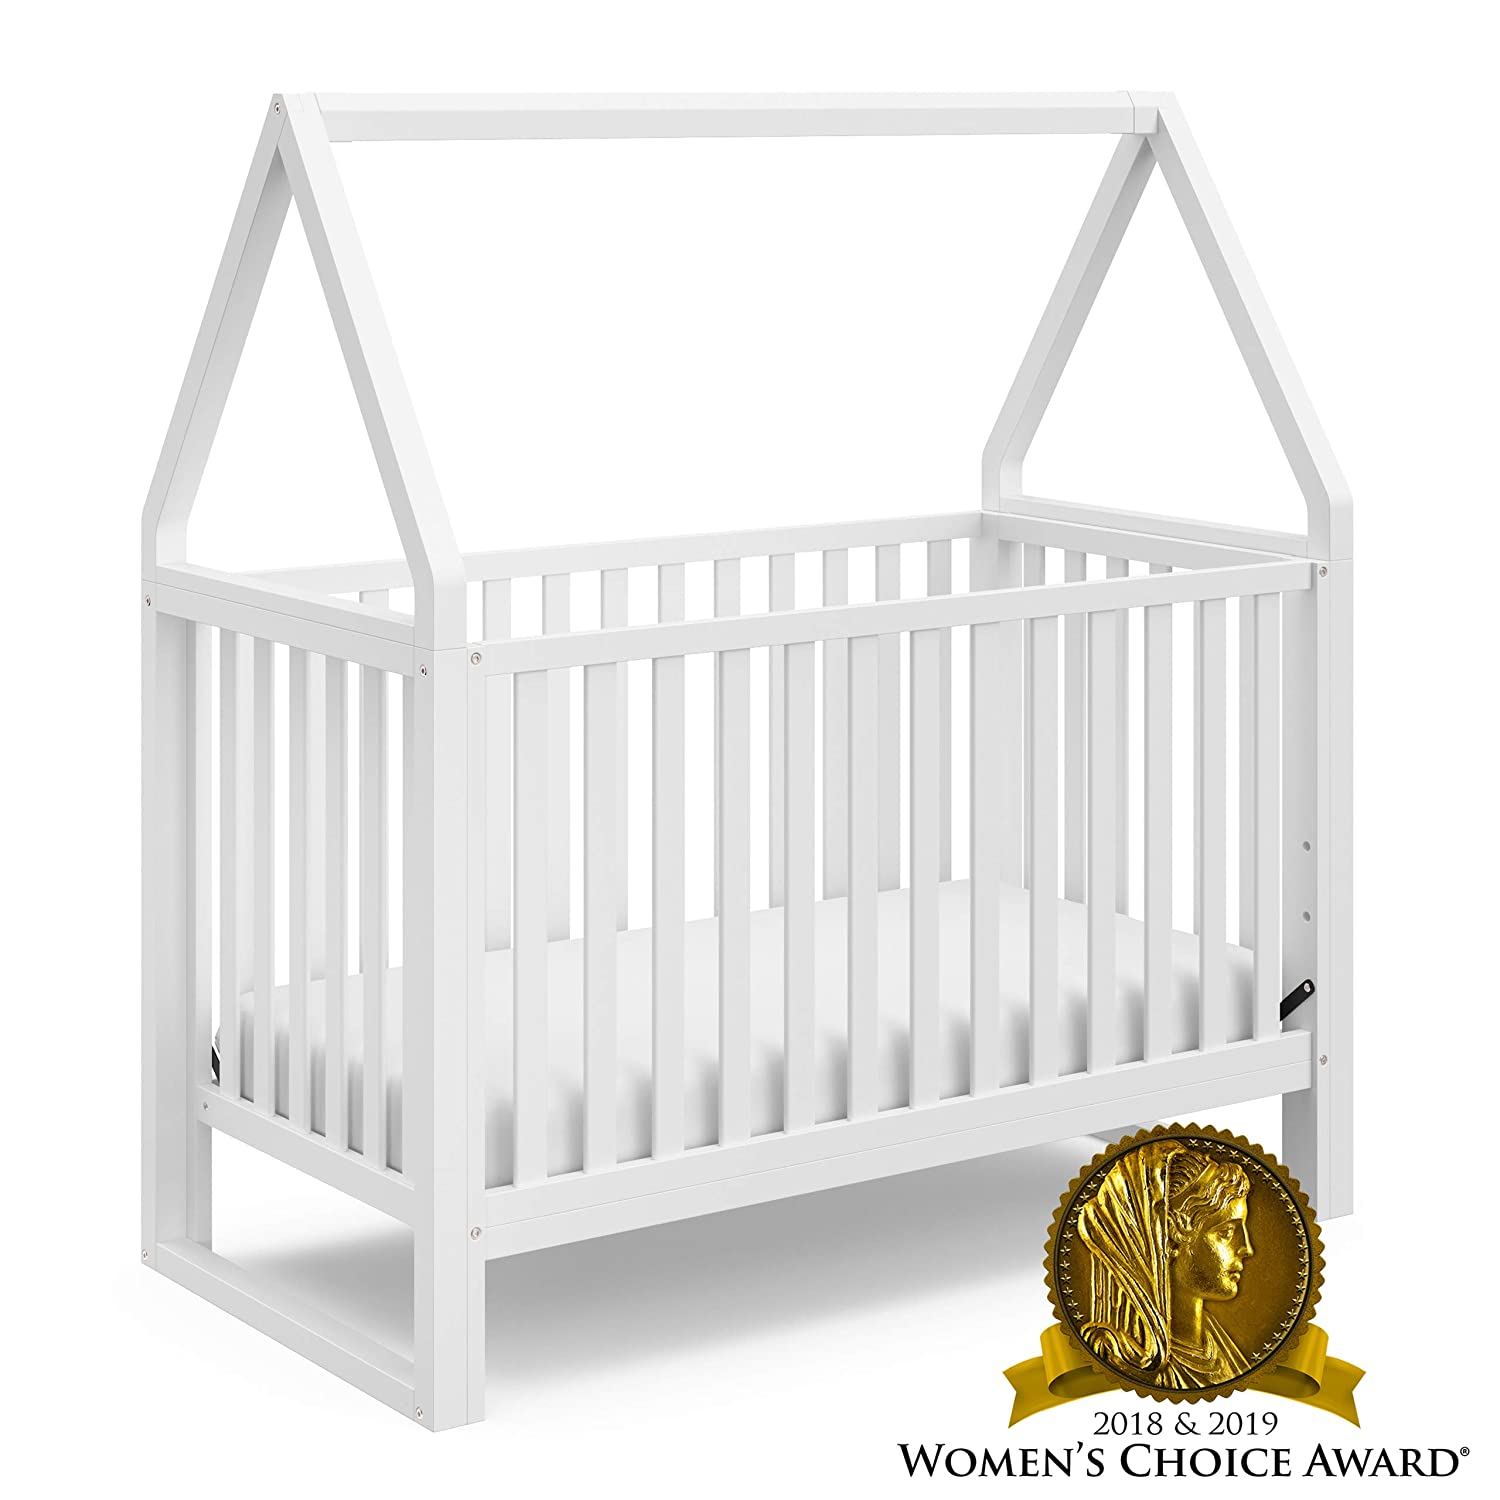 Storkcraft Orchard 5-in-1 Convertible Crib White – Easily Converts to Toddler Bed, Daybed, Full-Size Bed, and Playhouse, Detachable Canopy, 3-Position Adjustable Mattress Support Base